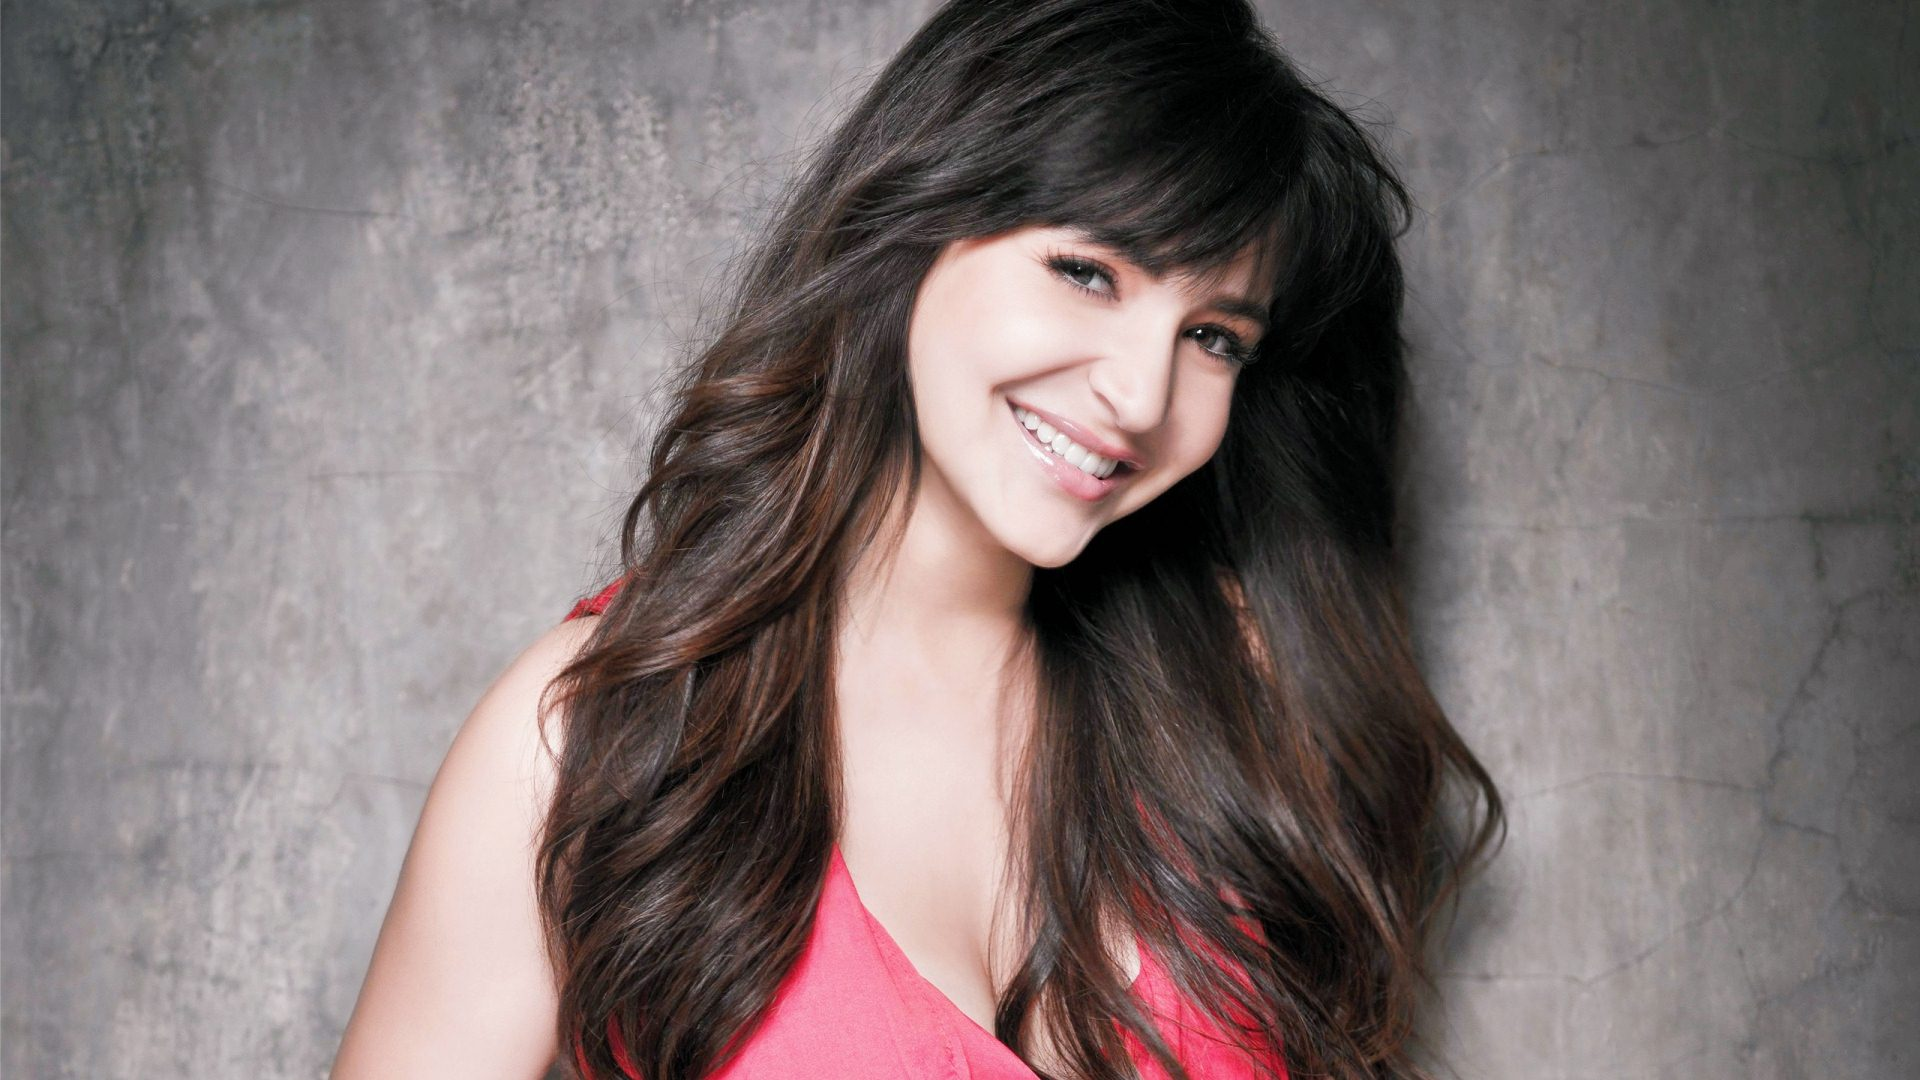 Anushka Sharma Anushka Sharma new images